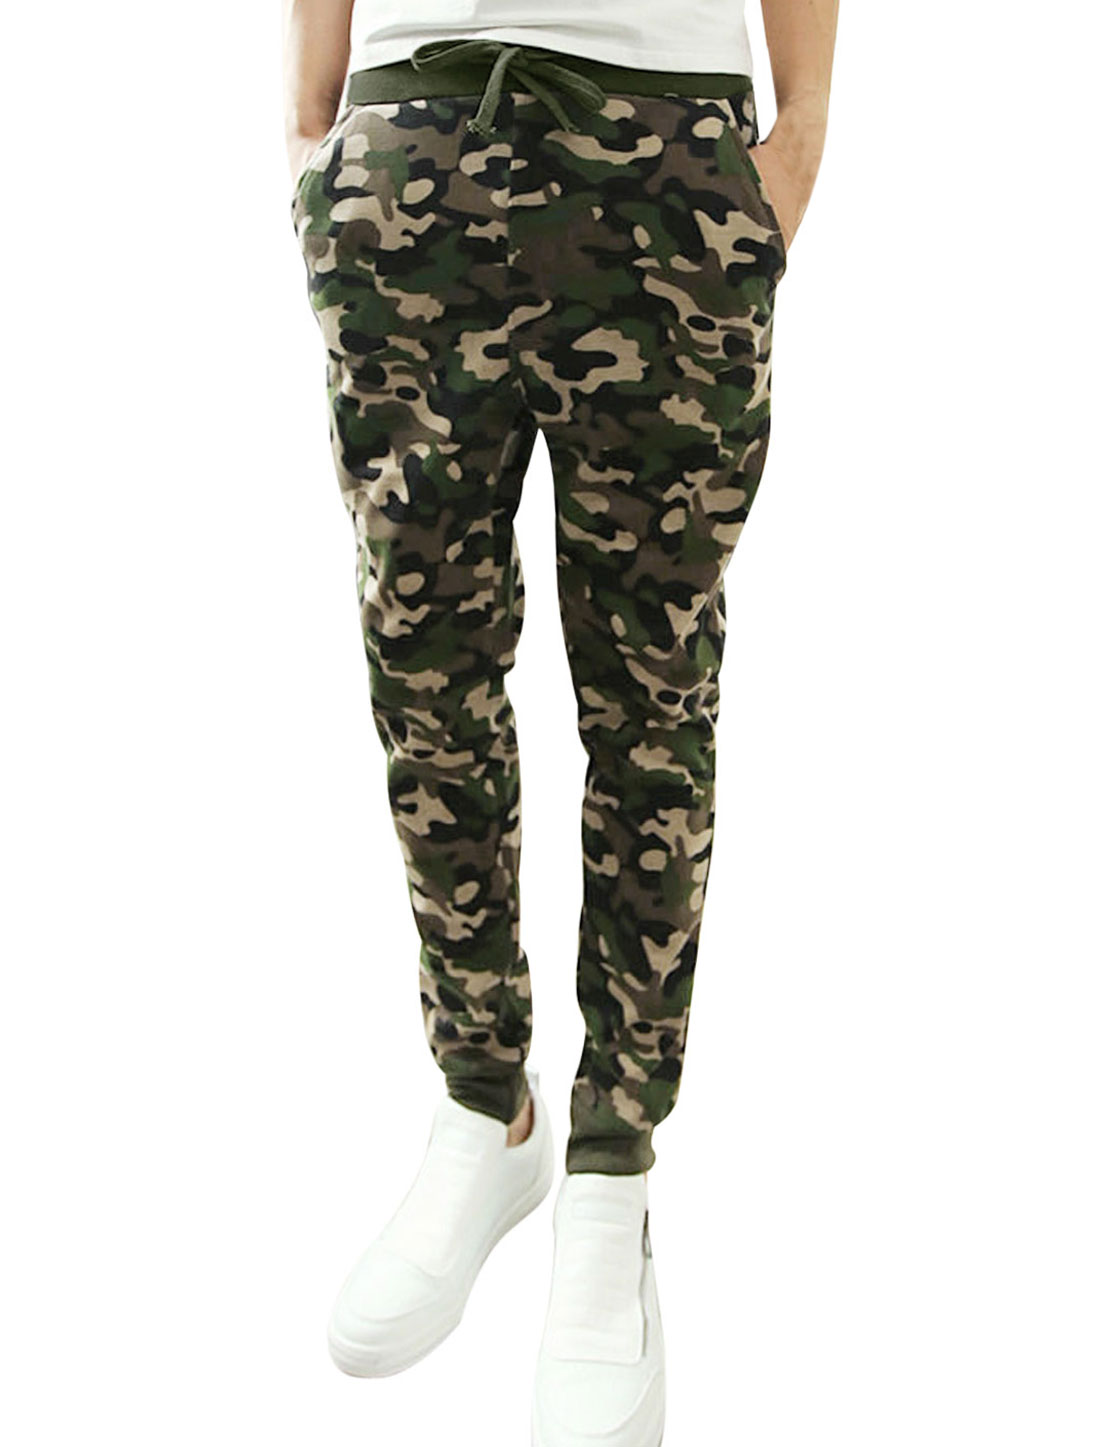 Men Drawstring Ribbed Cuffs All Over Camouflage Print Casual Pants Khaki Army Green W30